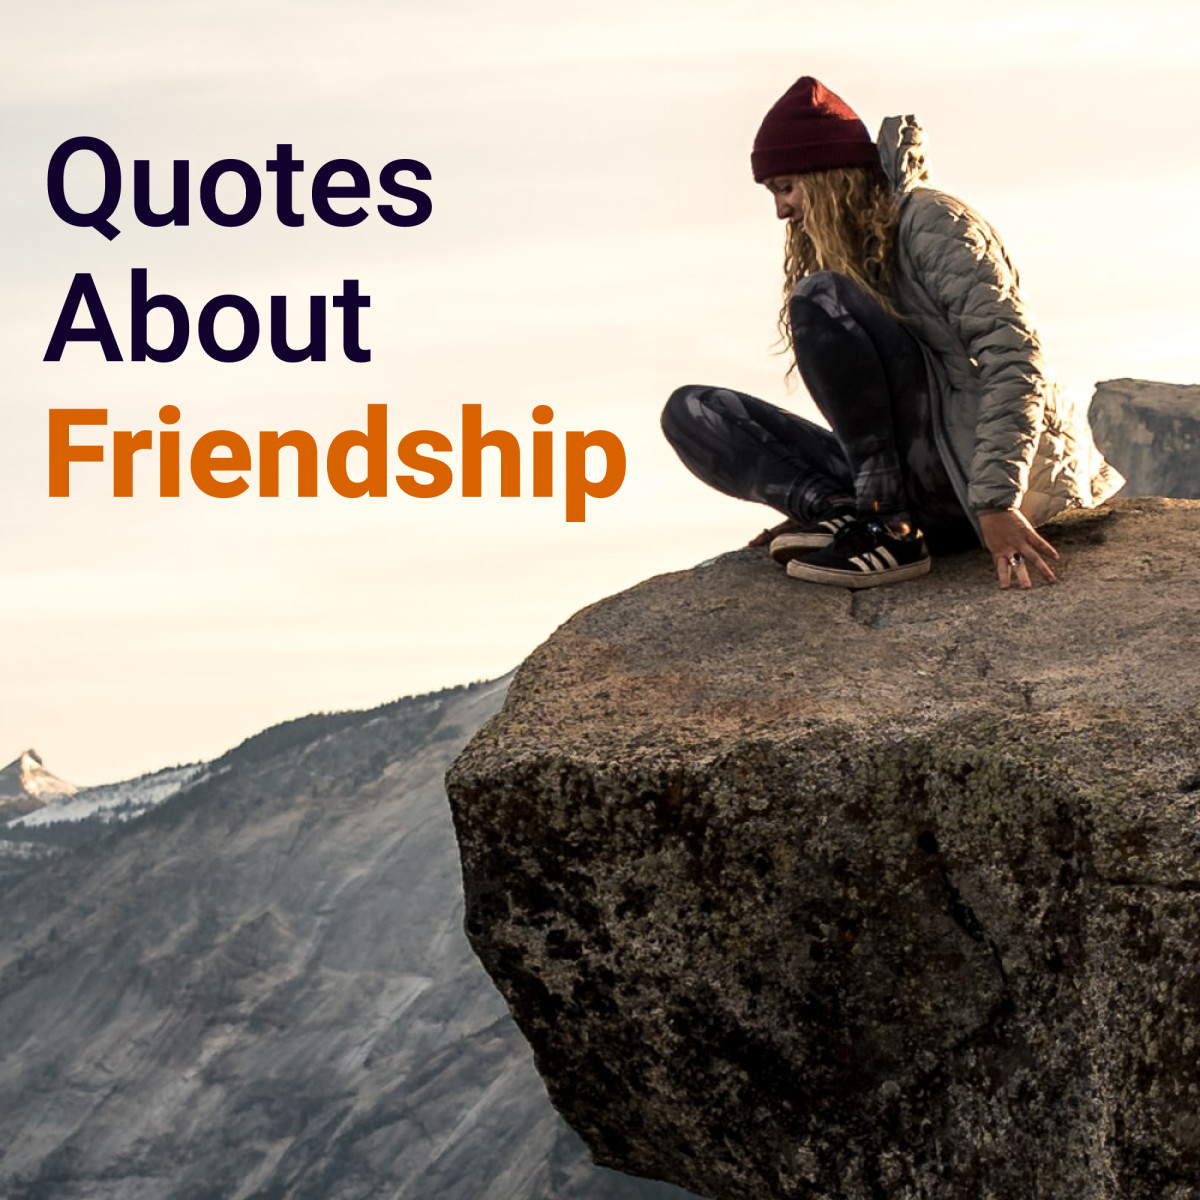 50+ Great Quotes About Friendship